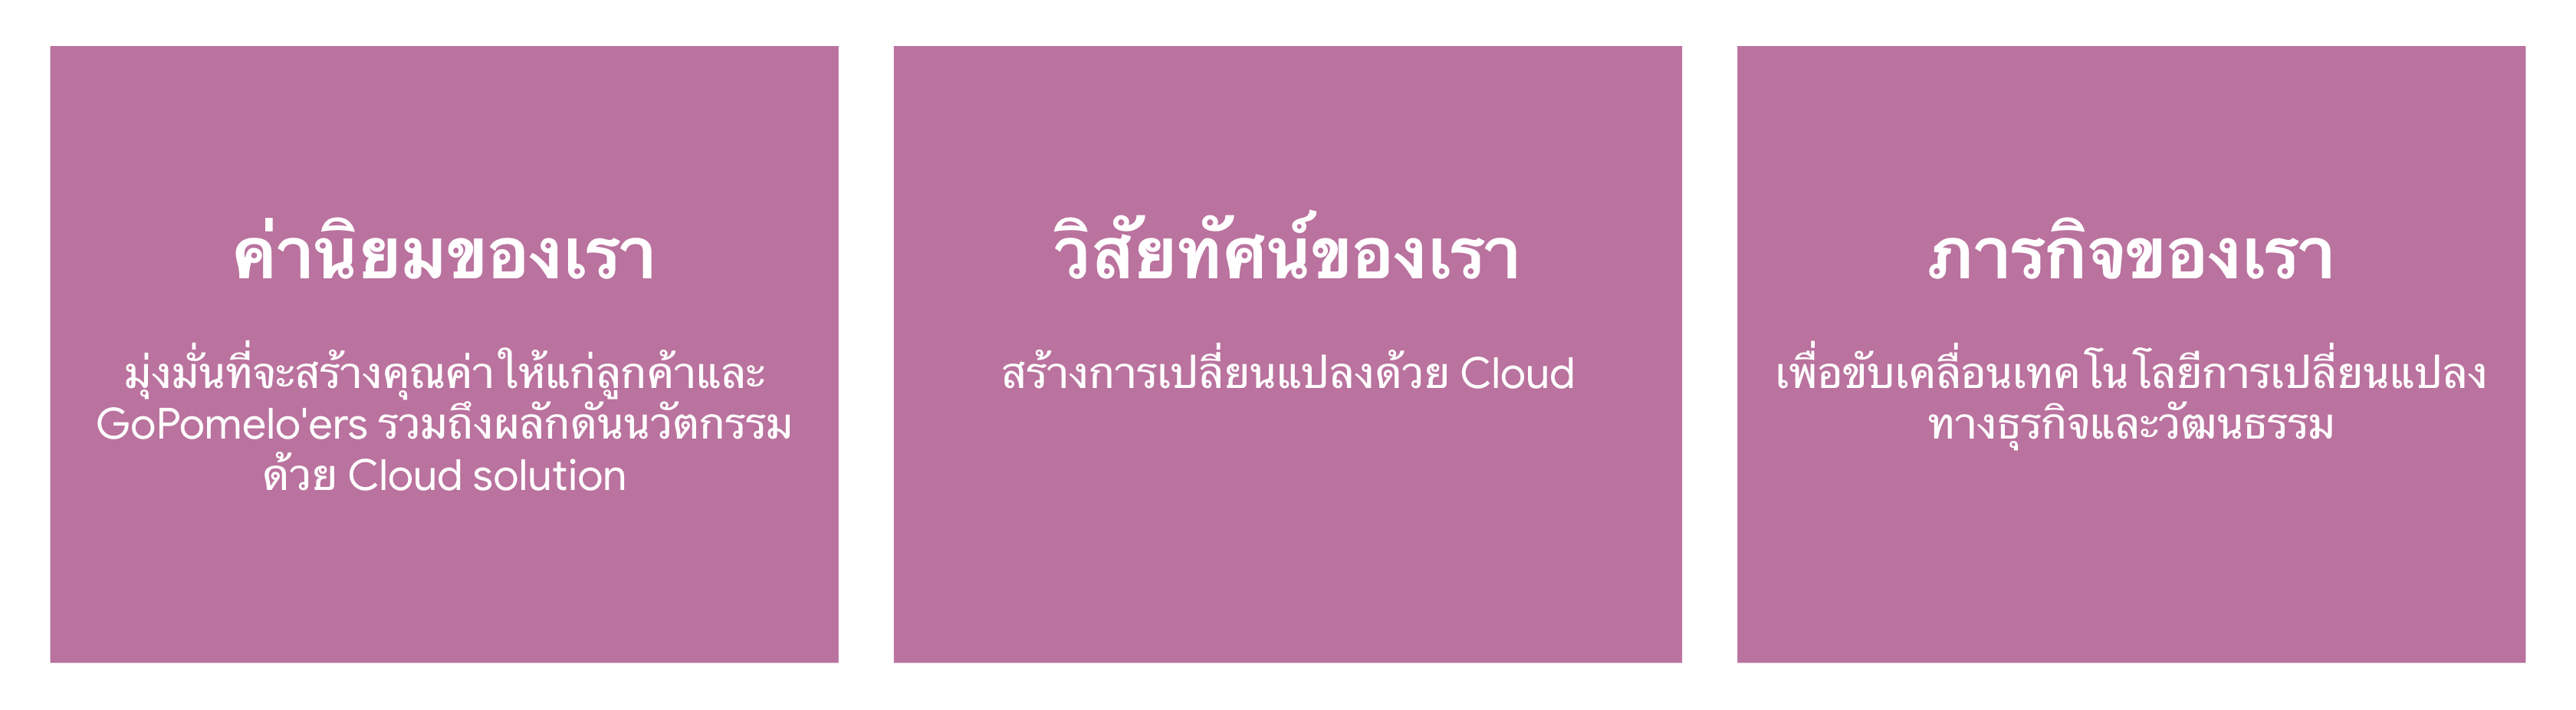 About us 2020 - Thai